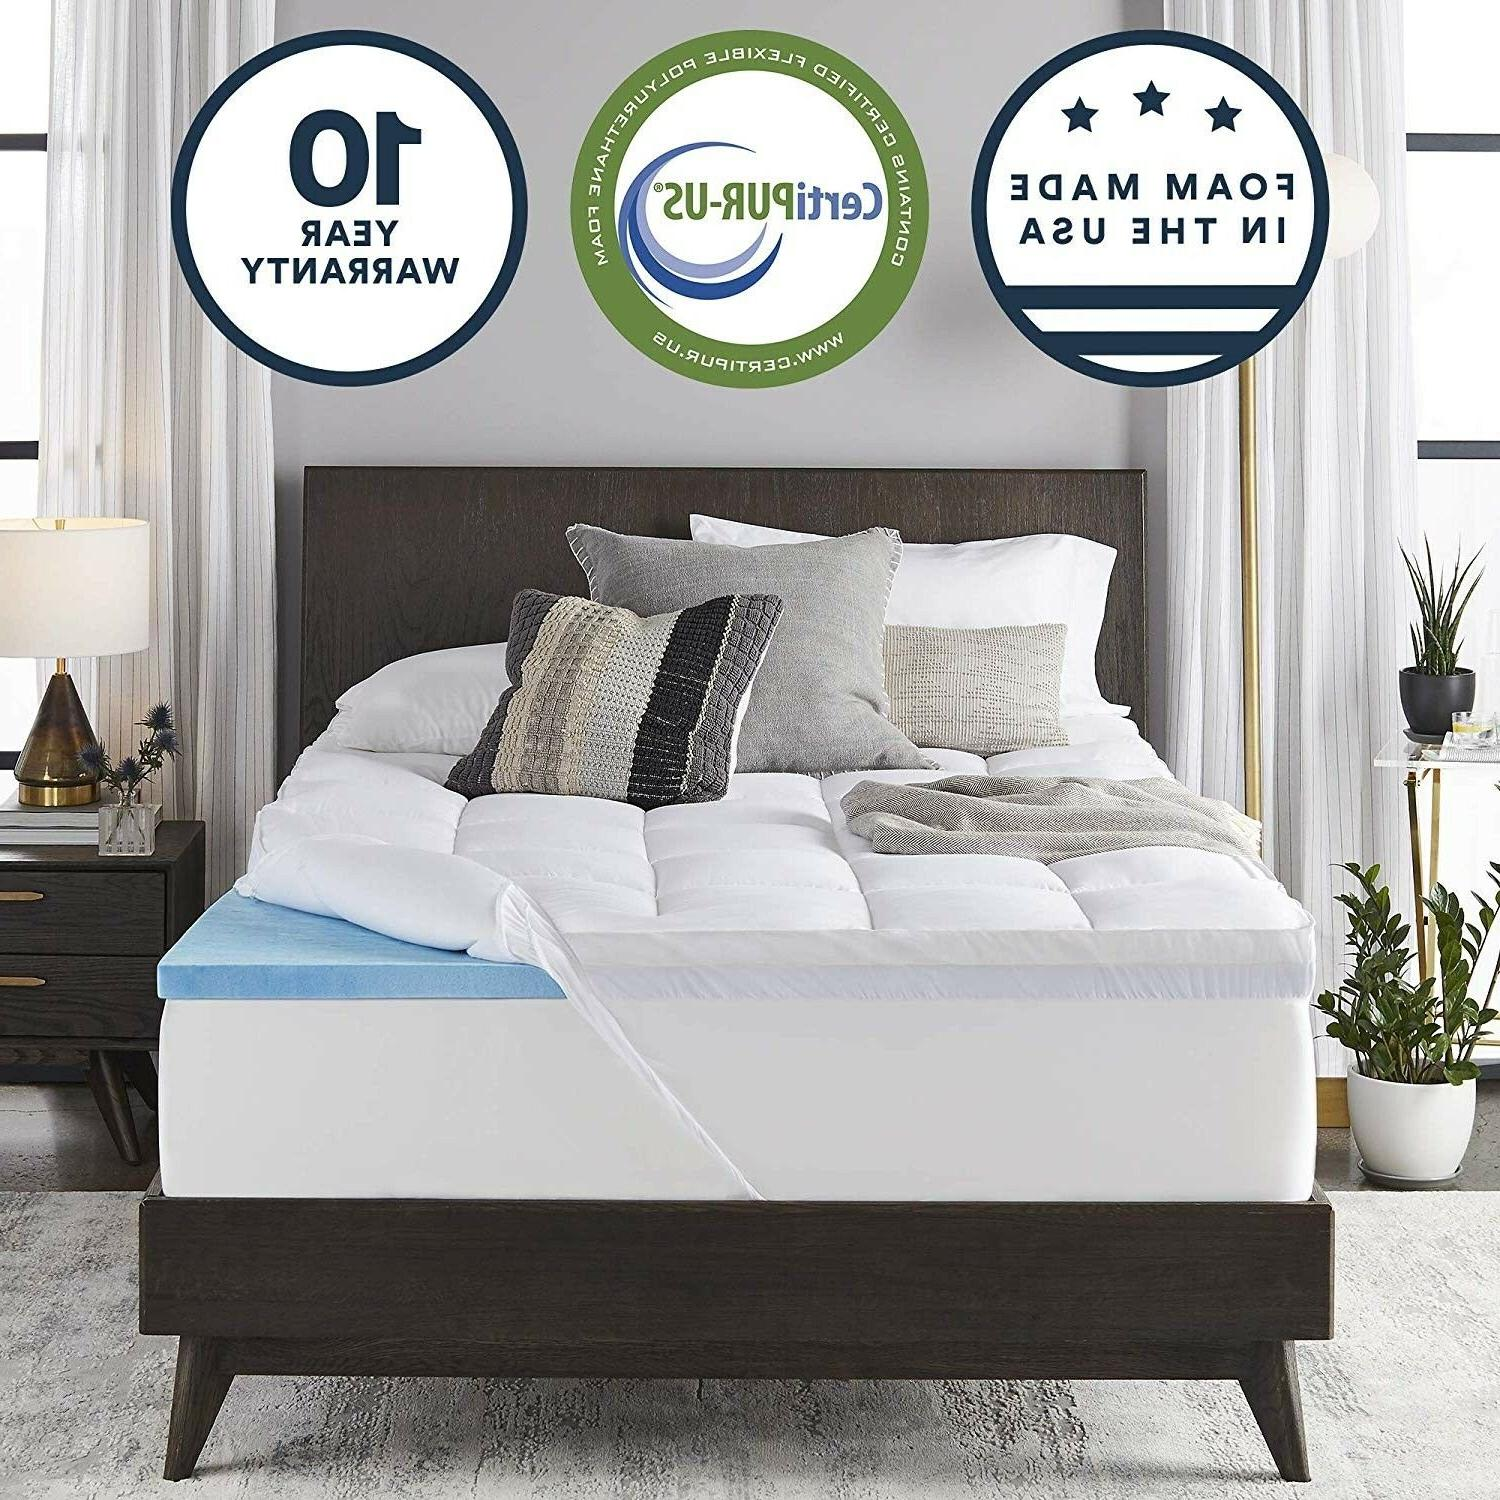 Sleep Innovations Memory Foam Mattresses Memoryfoammattressesi